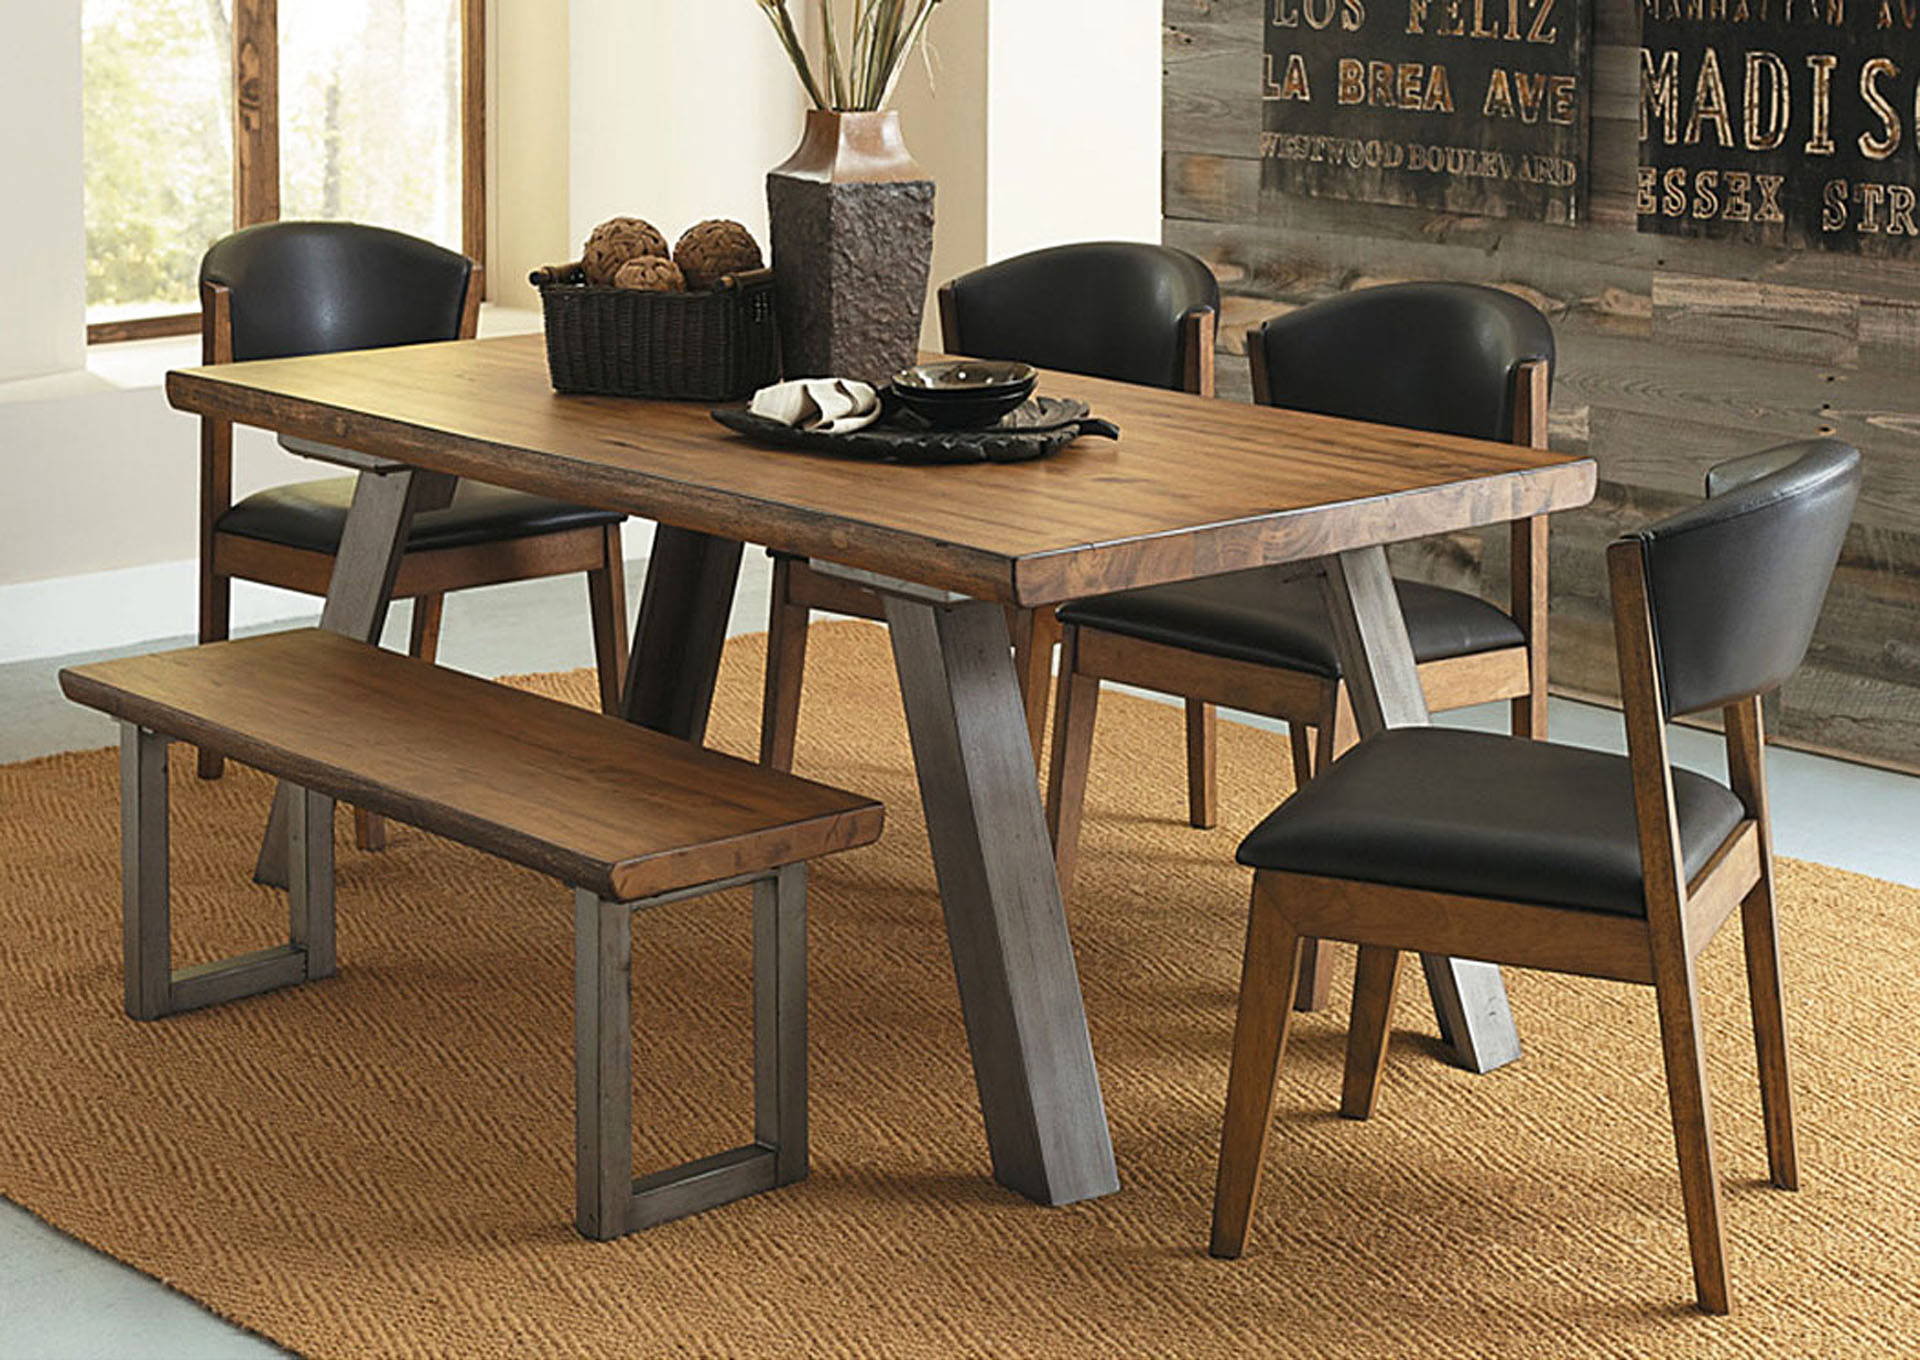 New Deal Mercantile Furniture Dining Table, Solid Wood Top ...